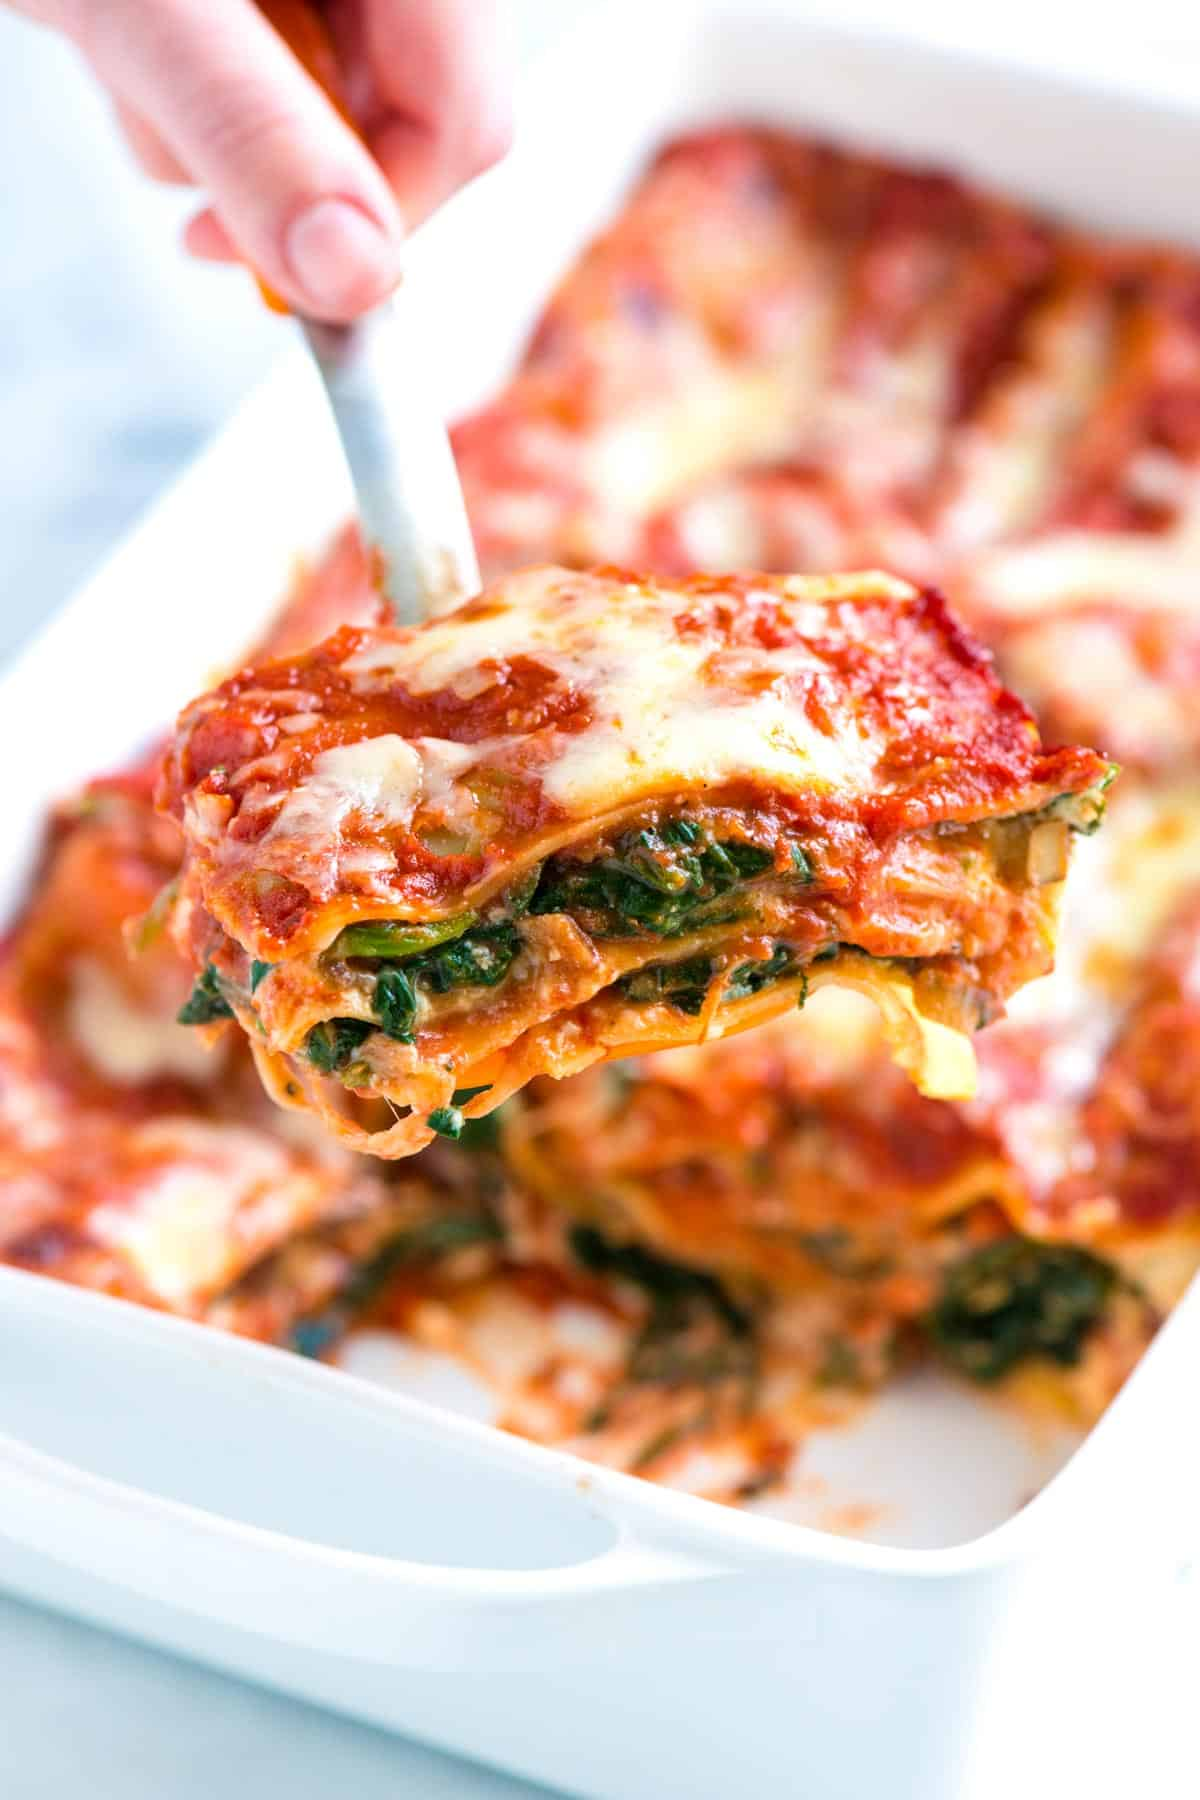 Stupendous Healthier Spinach Lasagna Recipe With Mushrooms Interior Design Ideas Pimpapslepicentreinfo